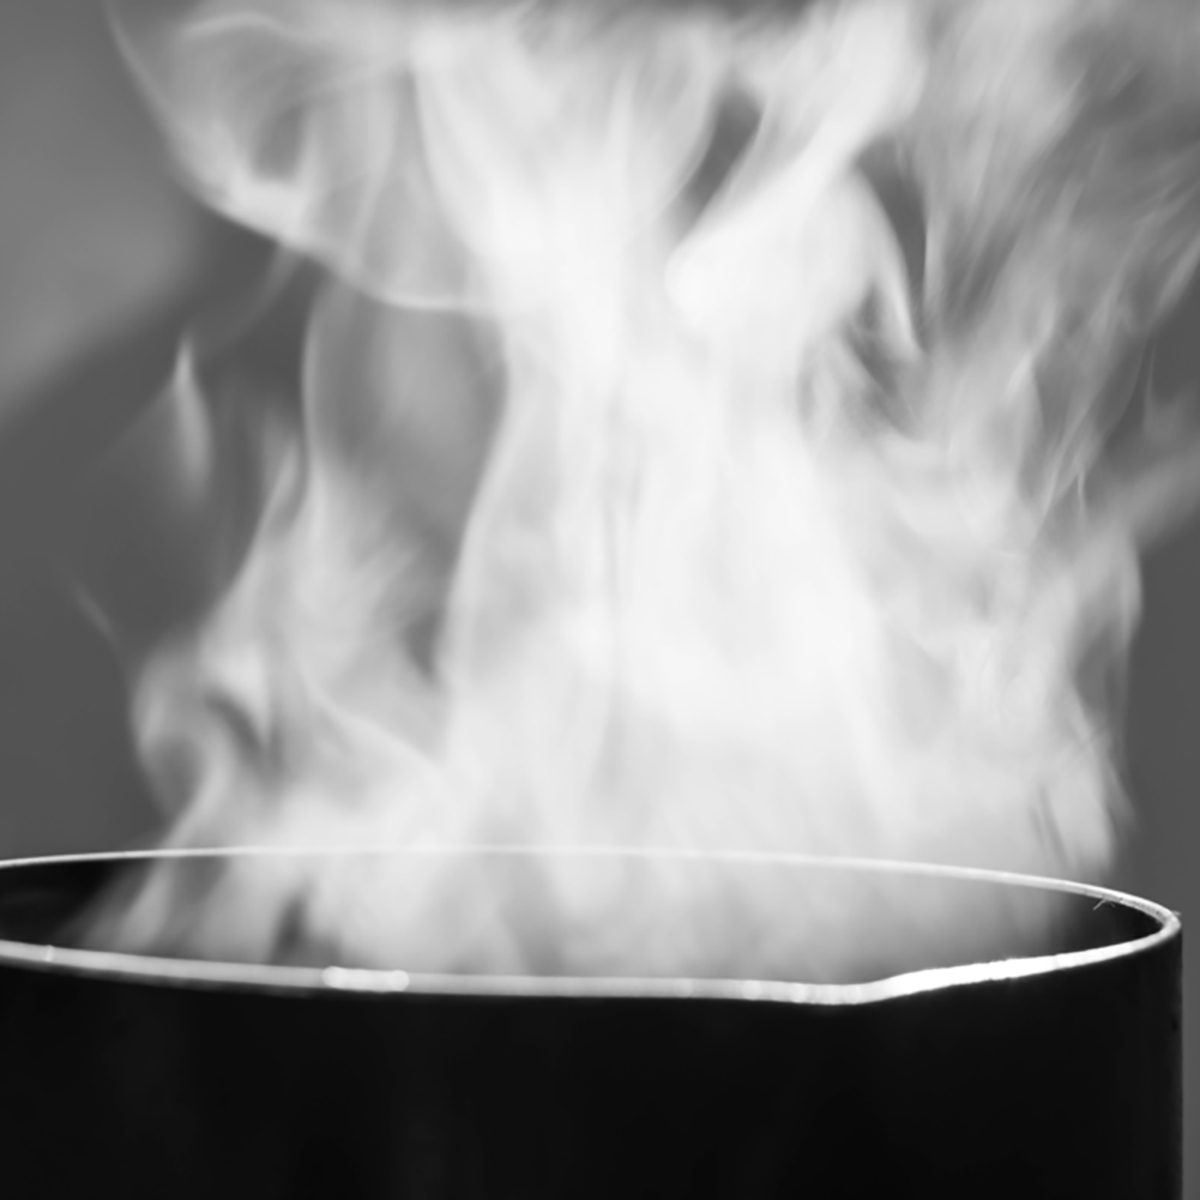 Selective focus steam over cooking pot